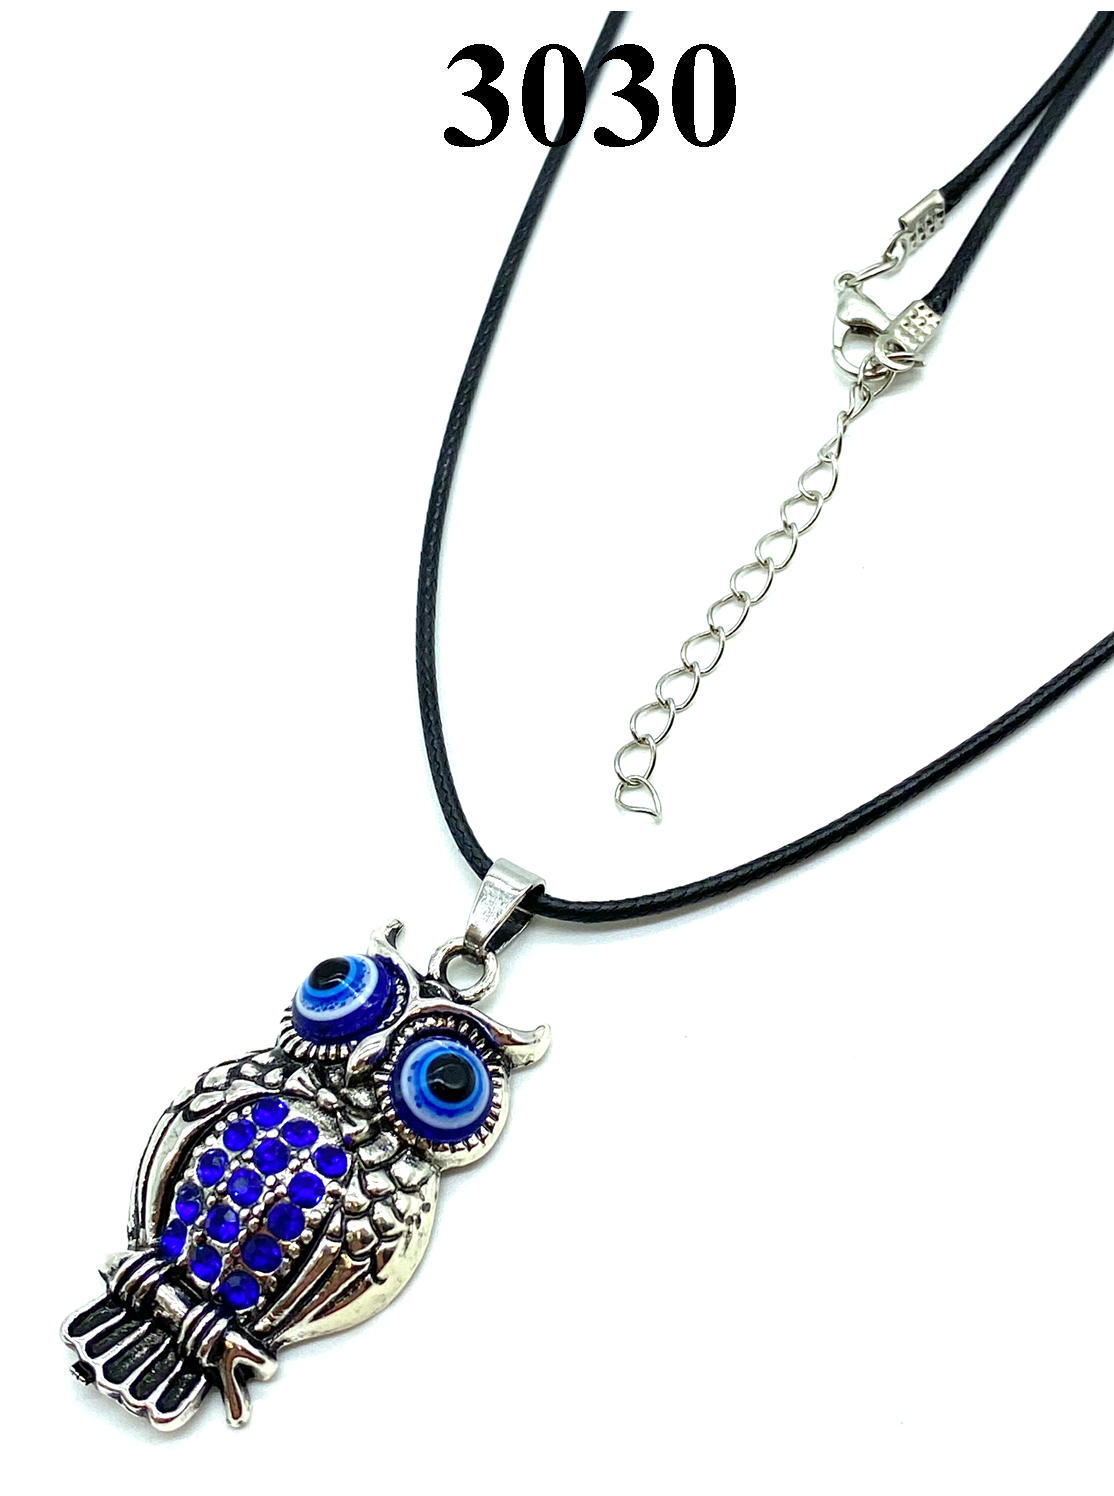 Owl Evil Eye Necklace #3030